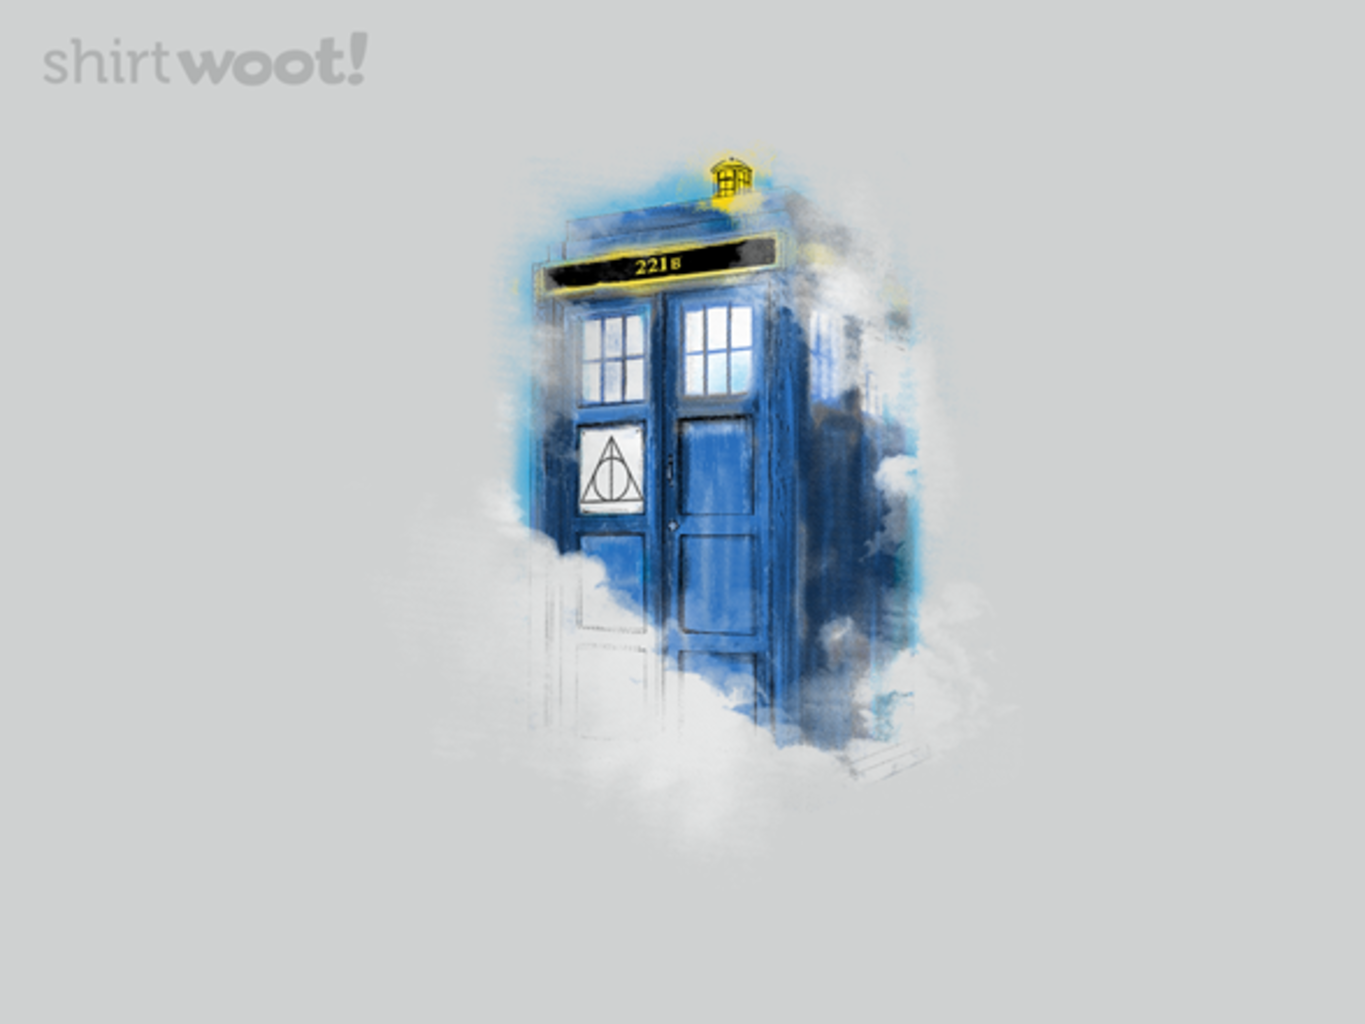 Woot!: Doctor Harry Holmes